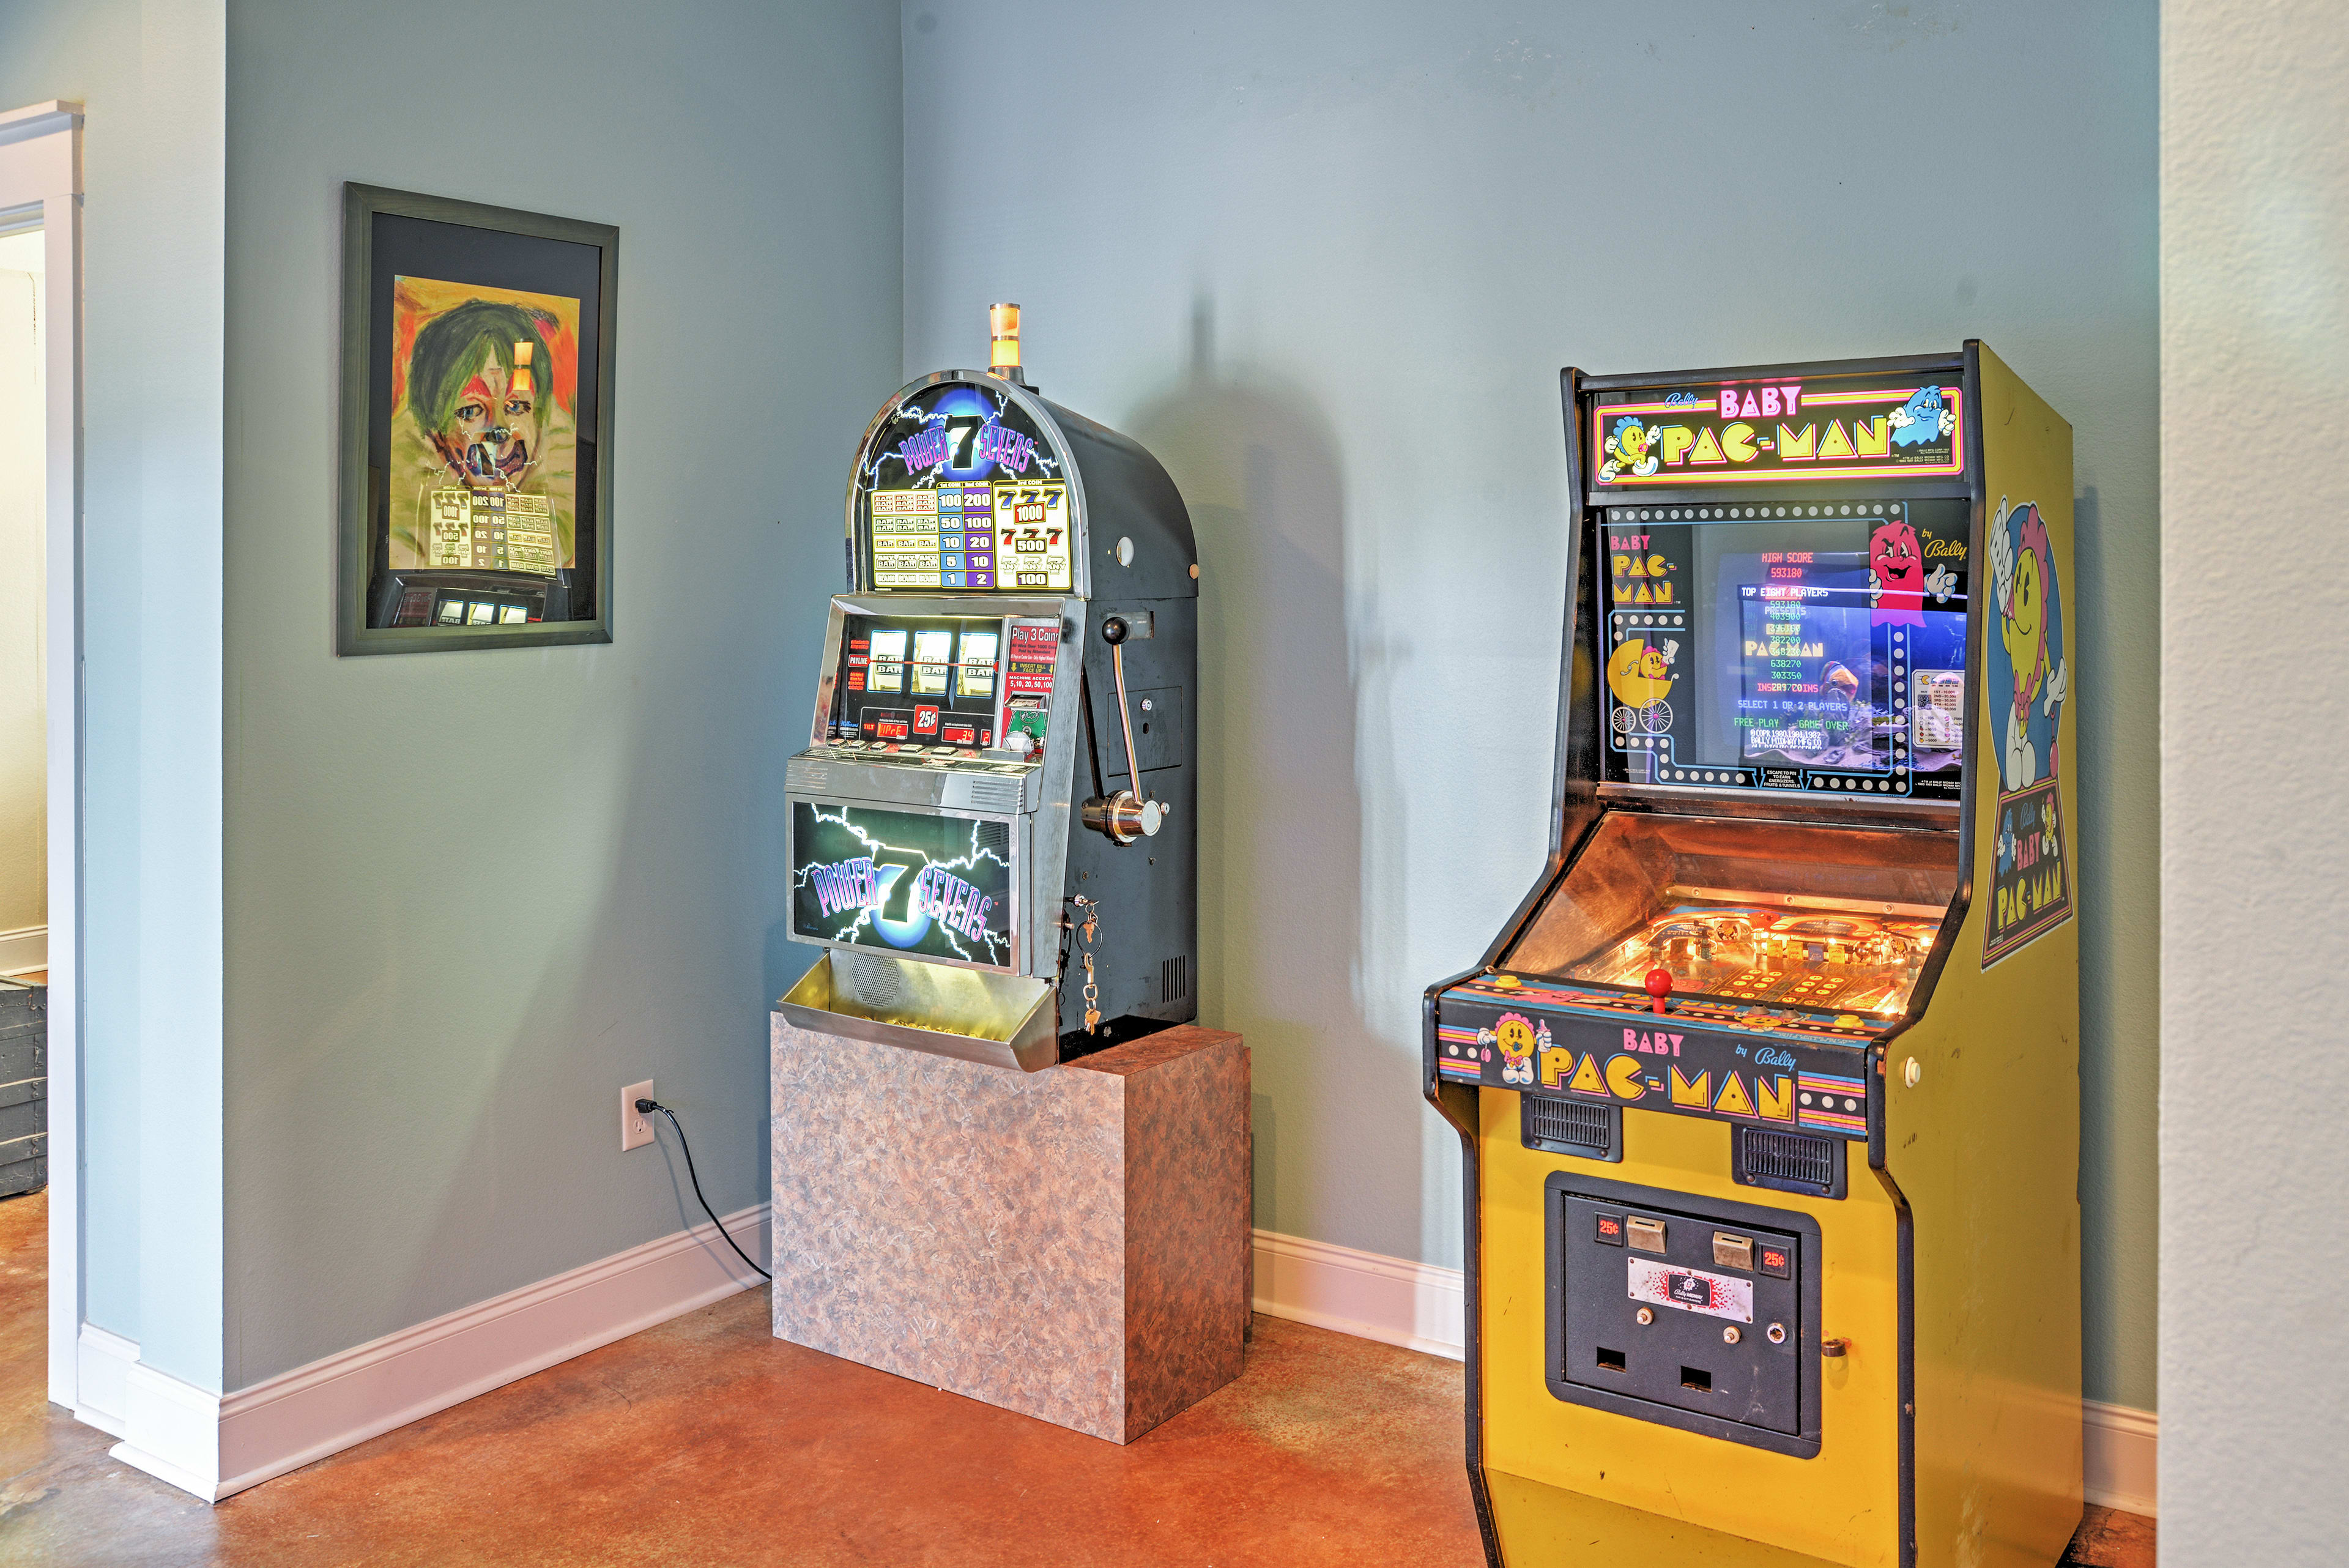 Play some games on the Baby Pac-Man or slots!